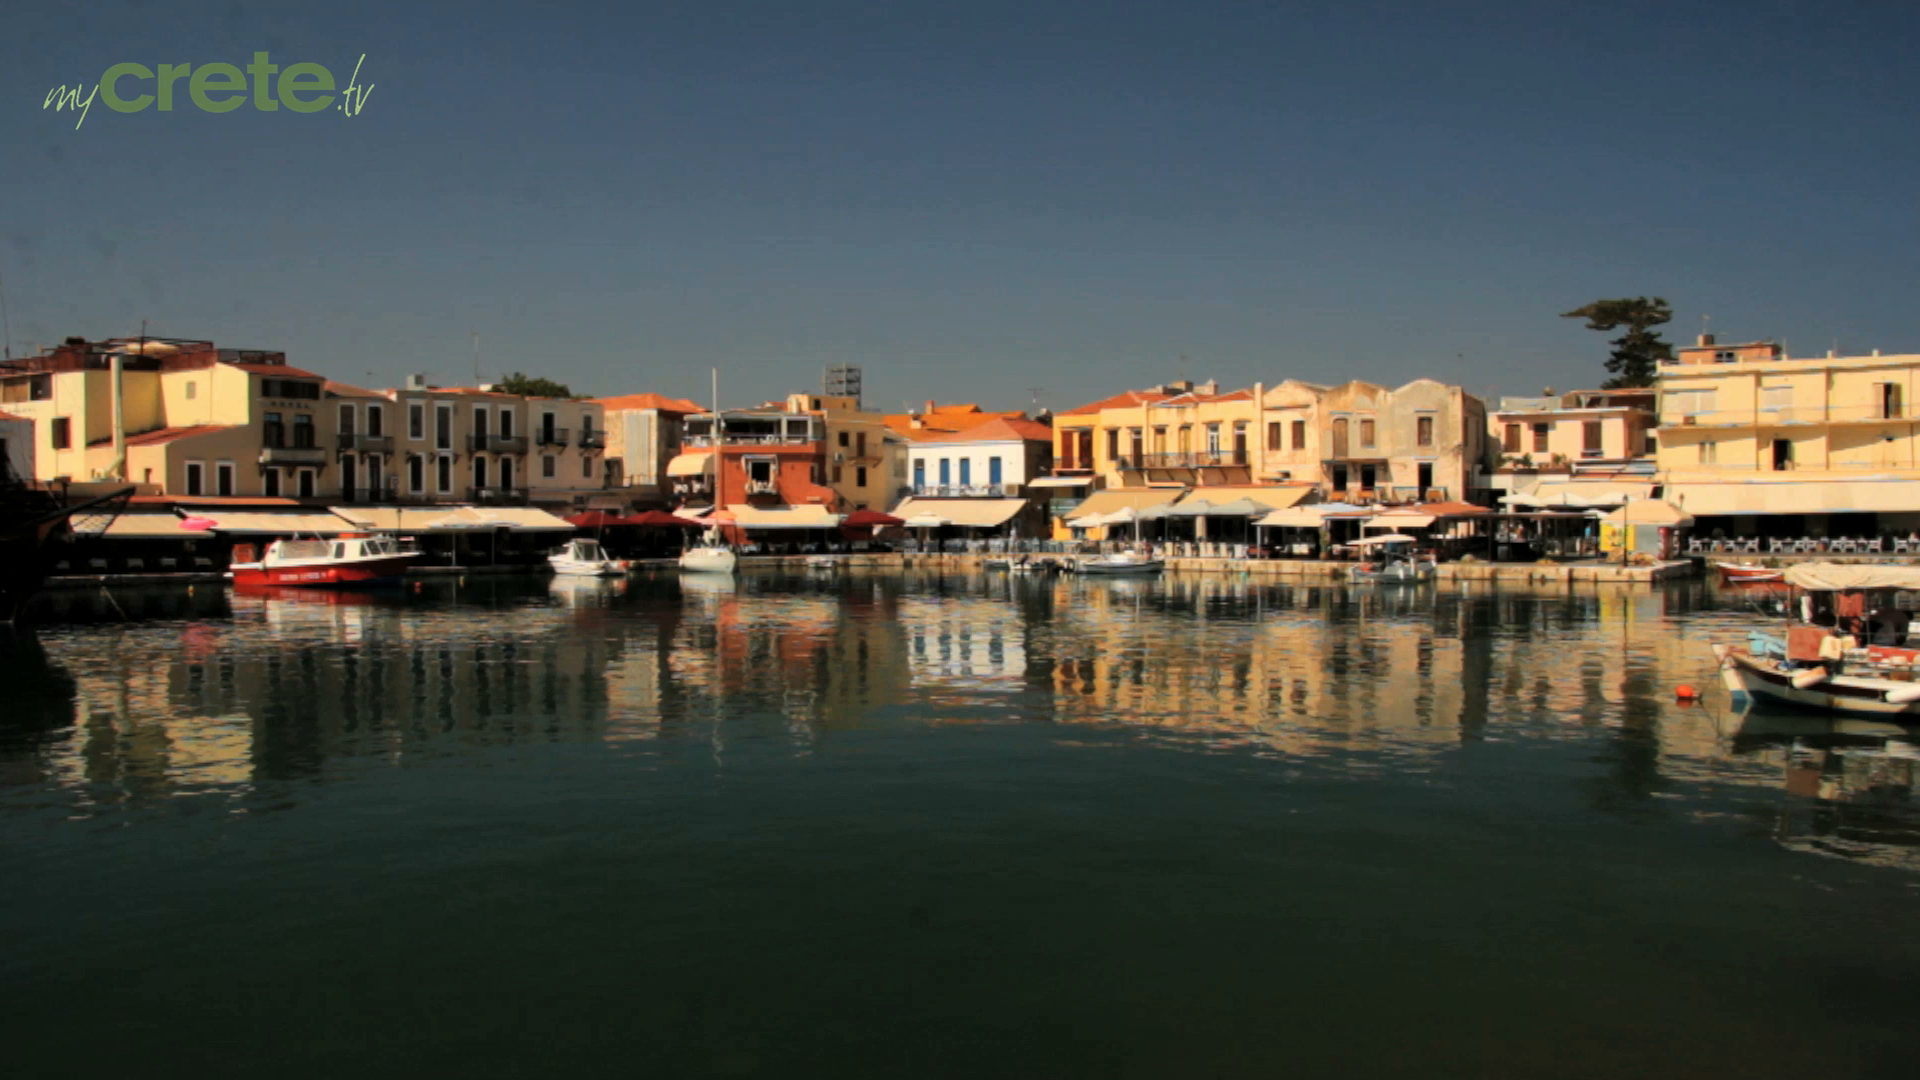 The Old Port of Rethymno